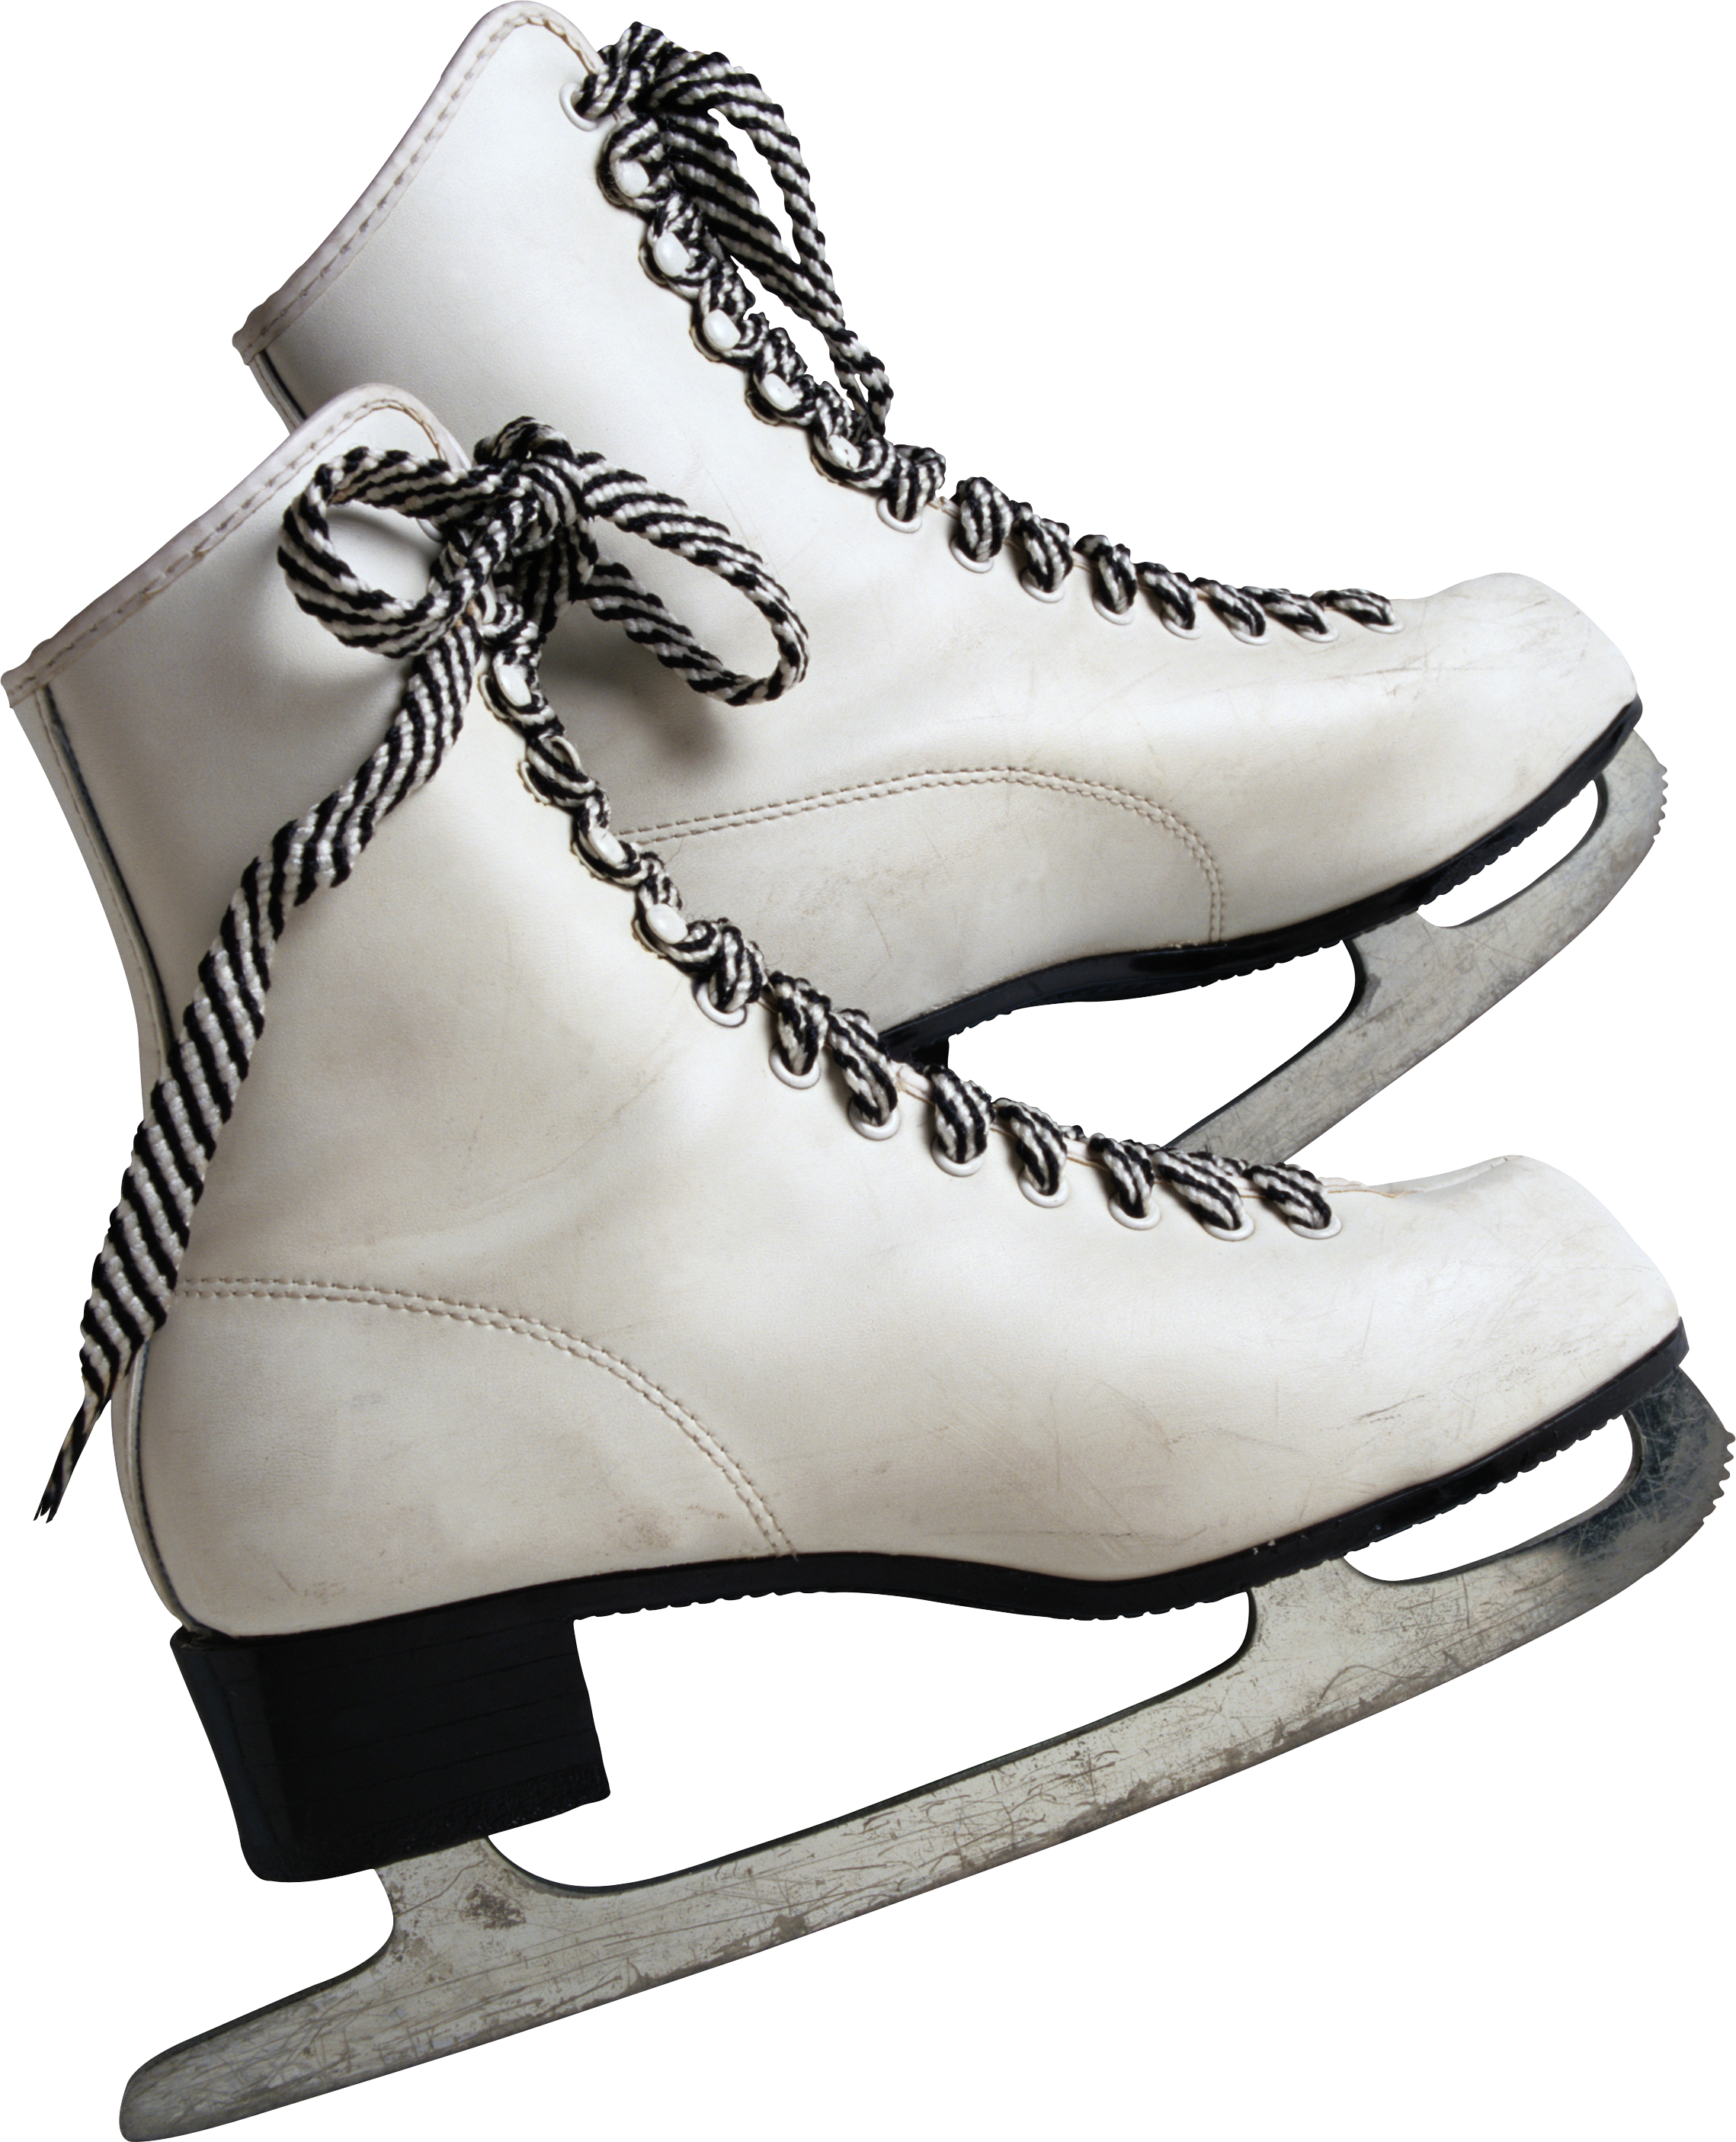 Winter clipart ice skating. Skates png images free